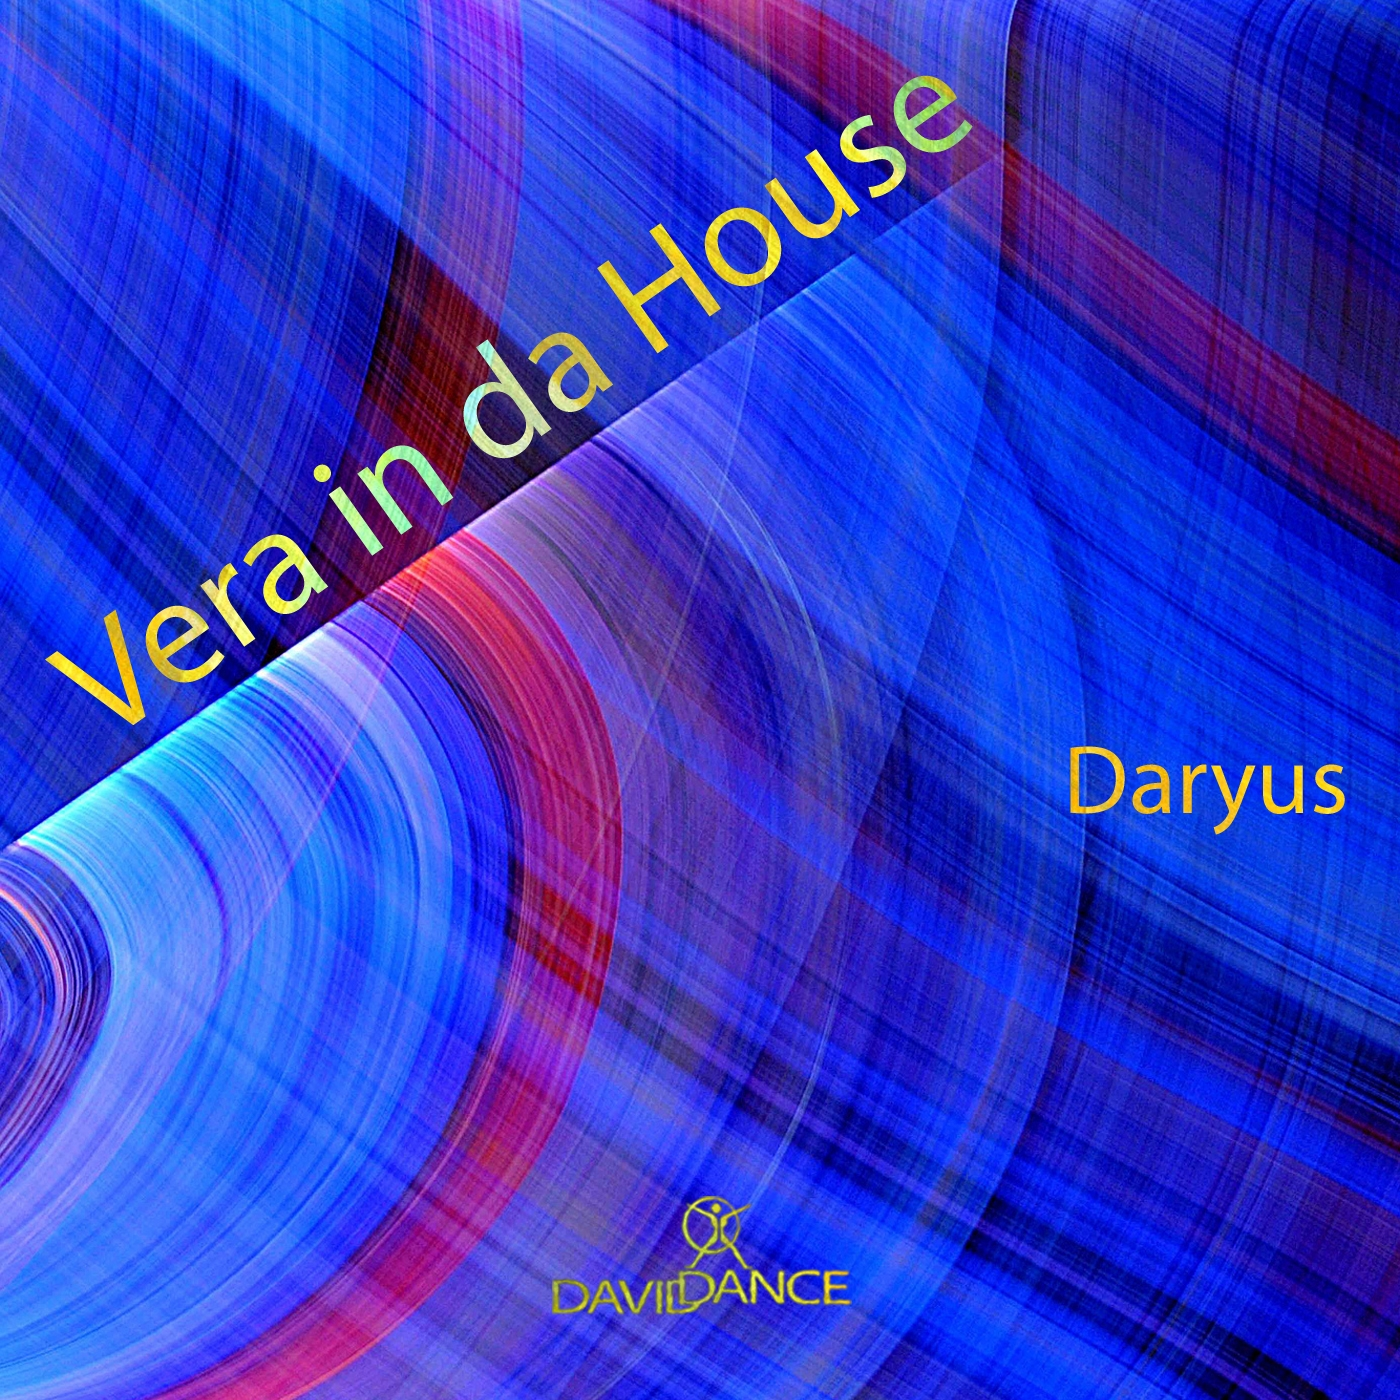 Daryus - Vera In Da House (Original mix)